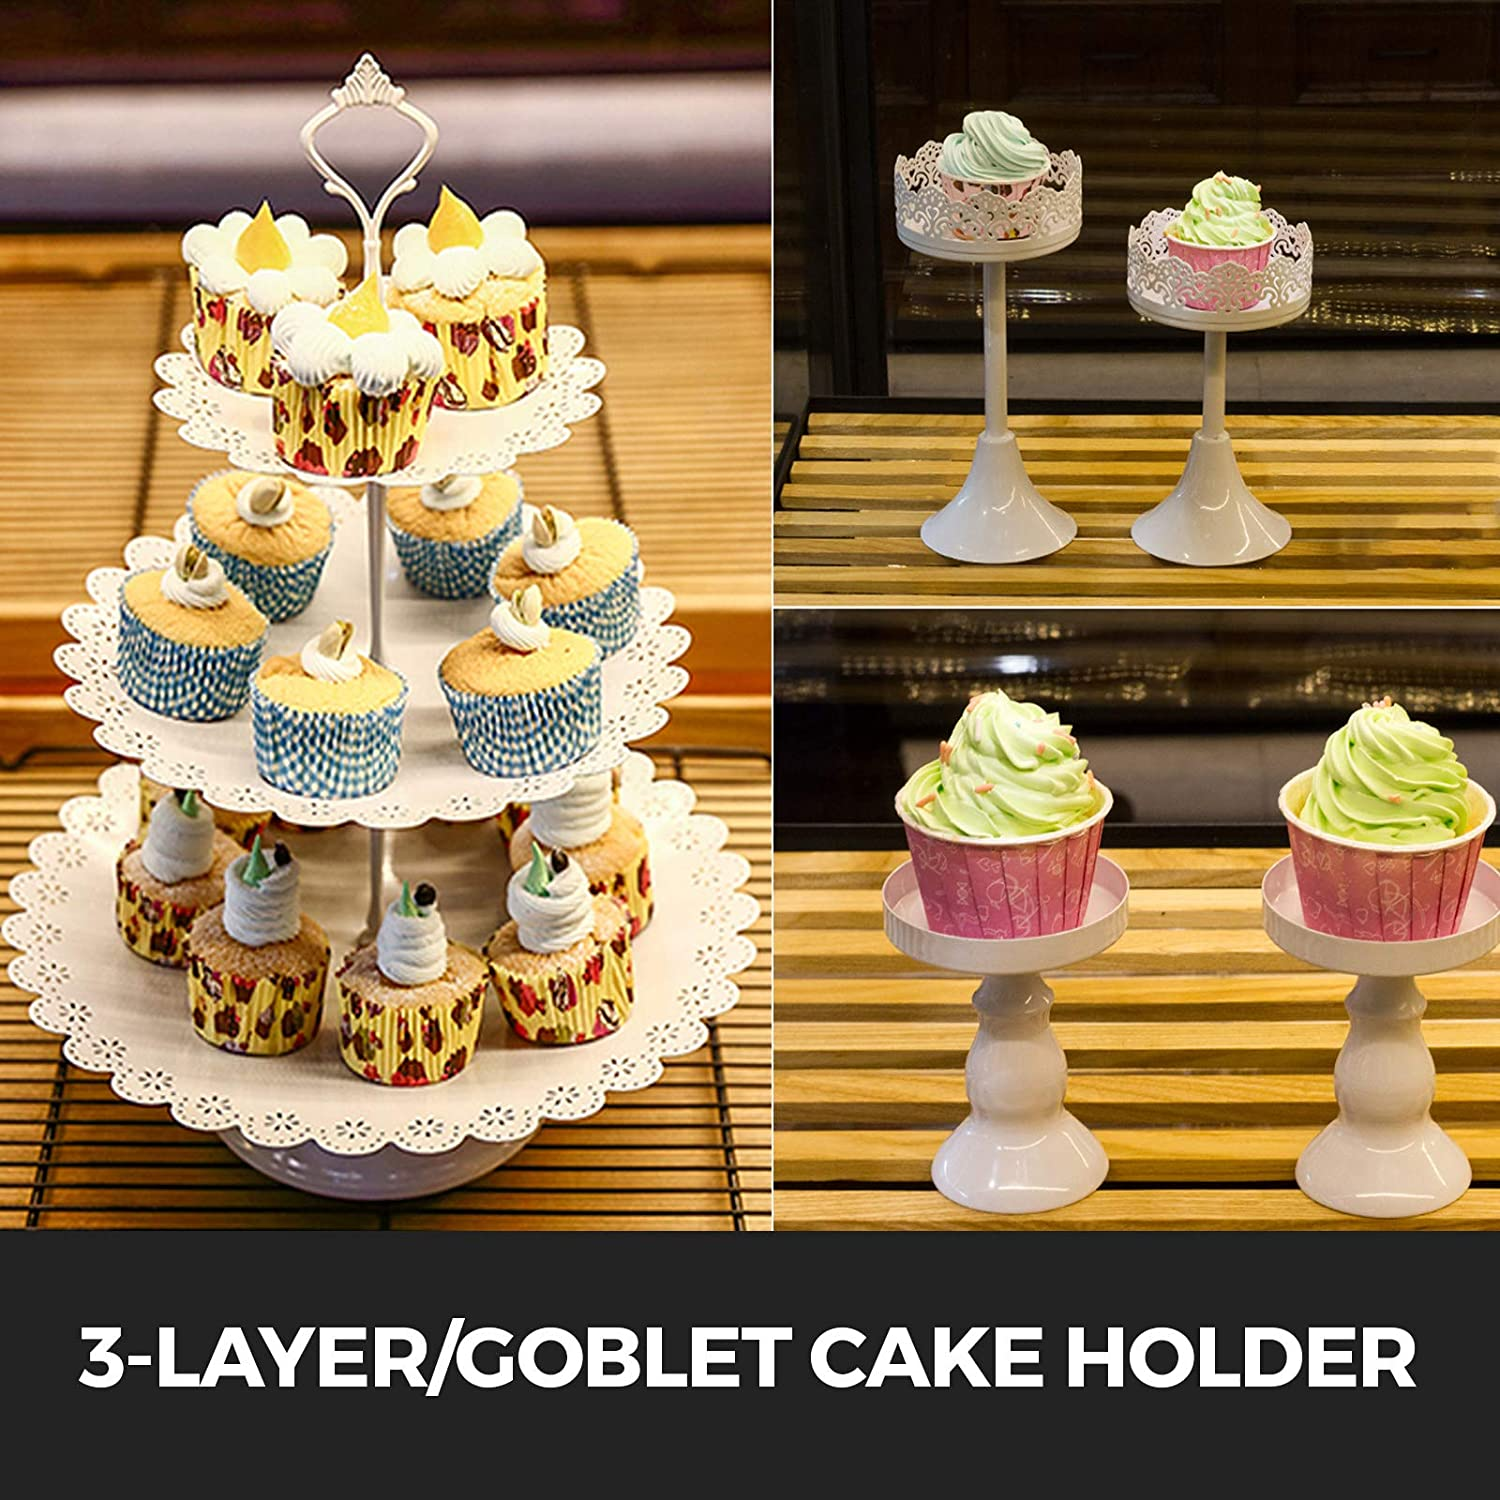 6PCS, White Happybuy 6 PCS Antique Metal Cake Stand Set with Crystal Pendants and Beads 3-Layer Tower Cake Plate Rectangle Cake Pans Round Dessert Holder Cupcake Stands for Party Wedding Birthday